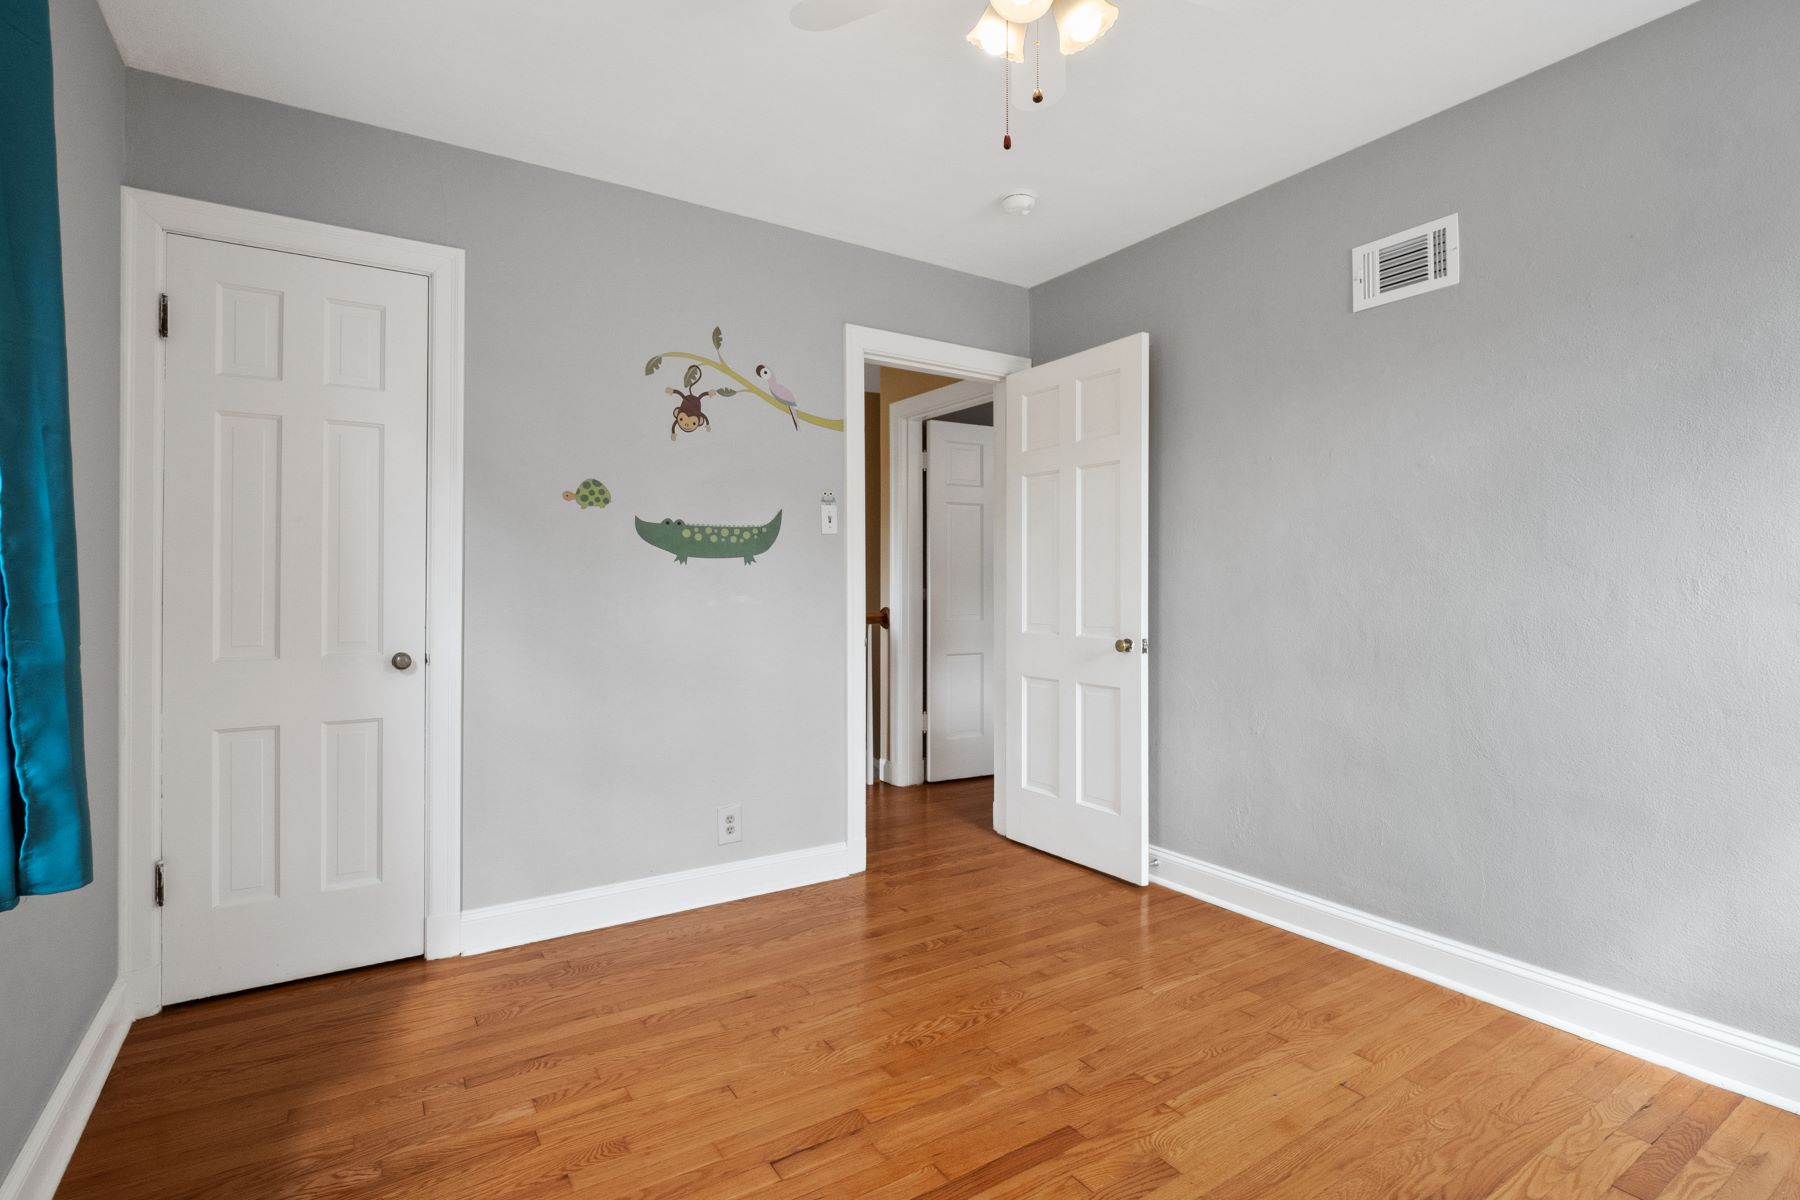 Additional photo for property listing at Richmond Heights Most Charming Home! 7545 Hiawatha Avenue Richmond Heights, Missouri 63117 United States